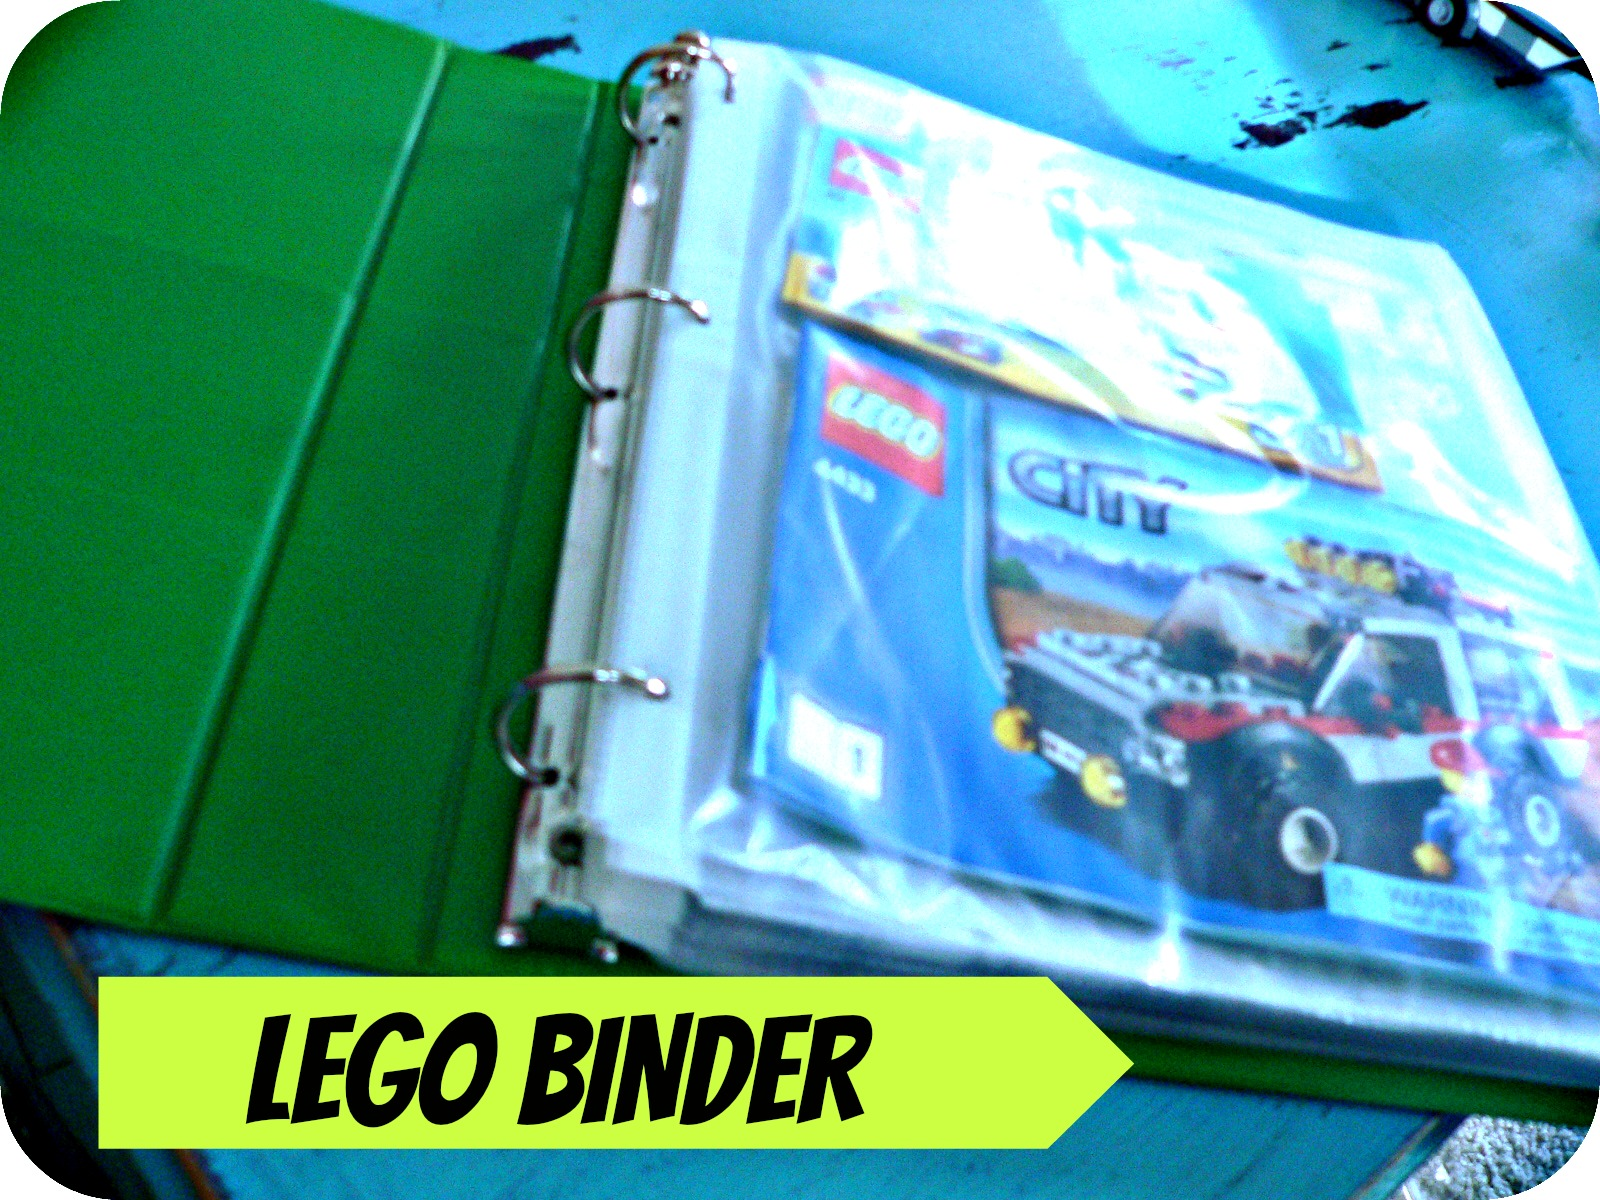 LEGOBINDER LEGO Manual Binder